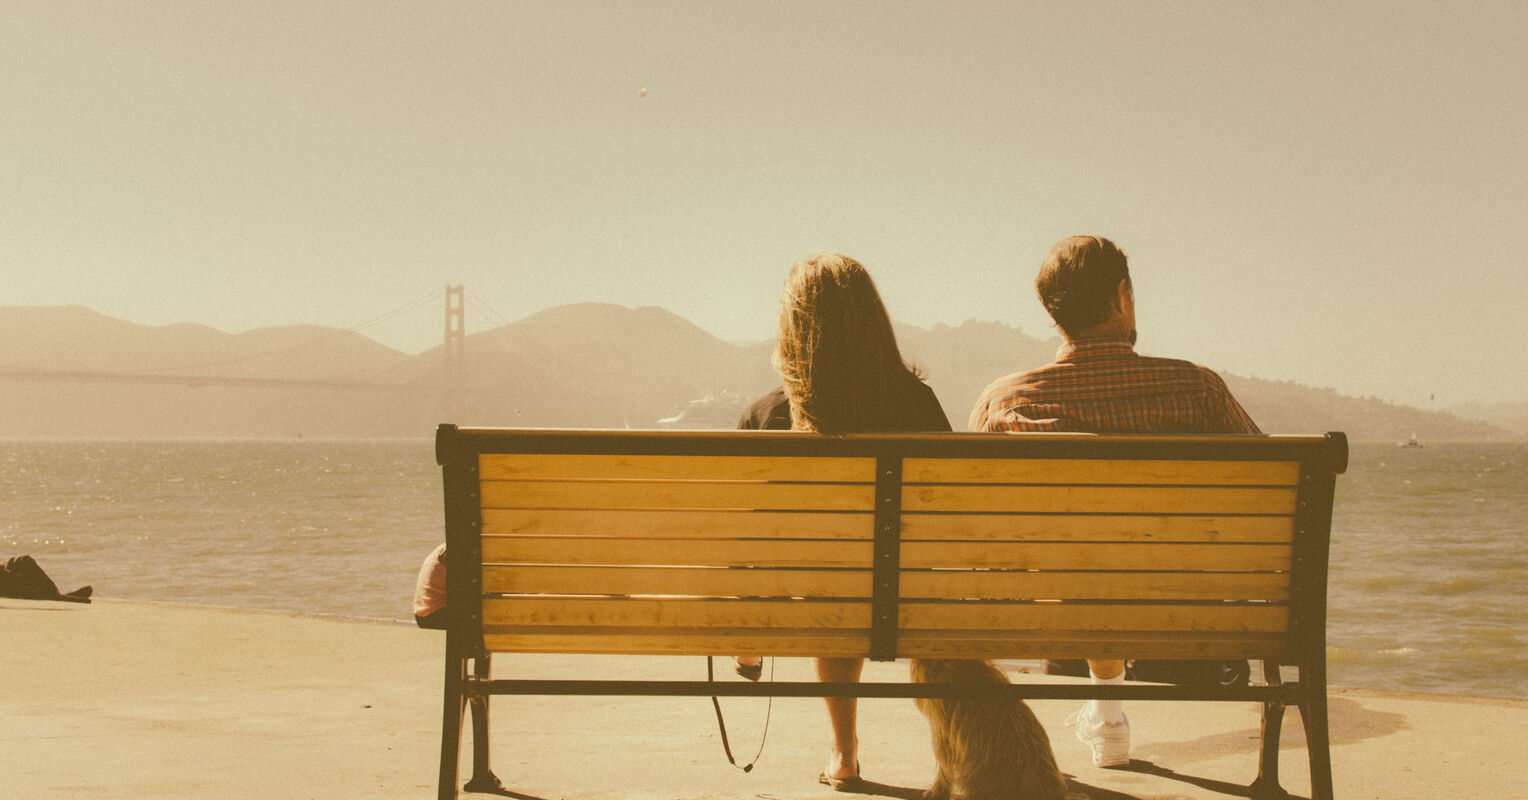 4 Clear Signs That a Relationship Can Last